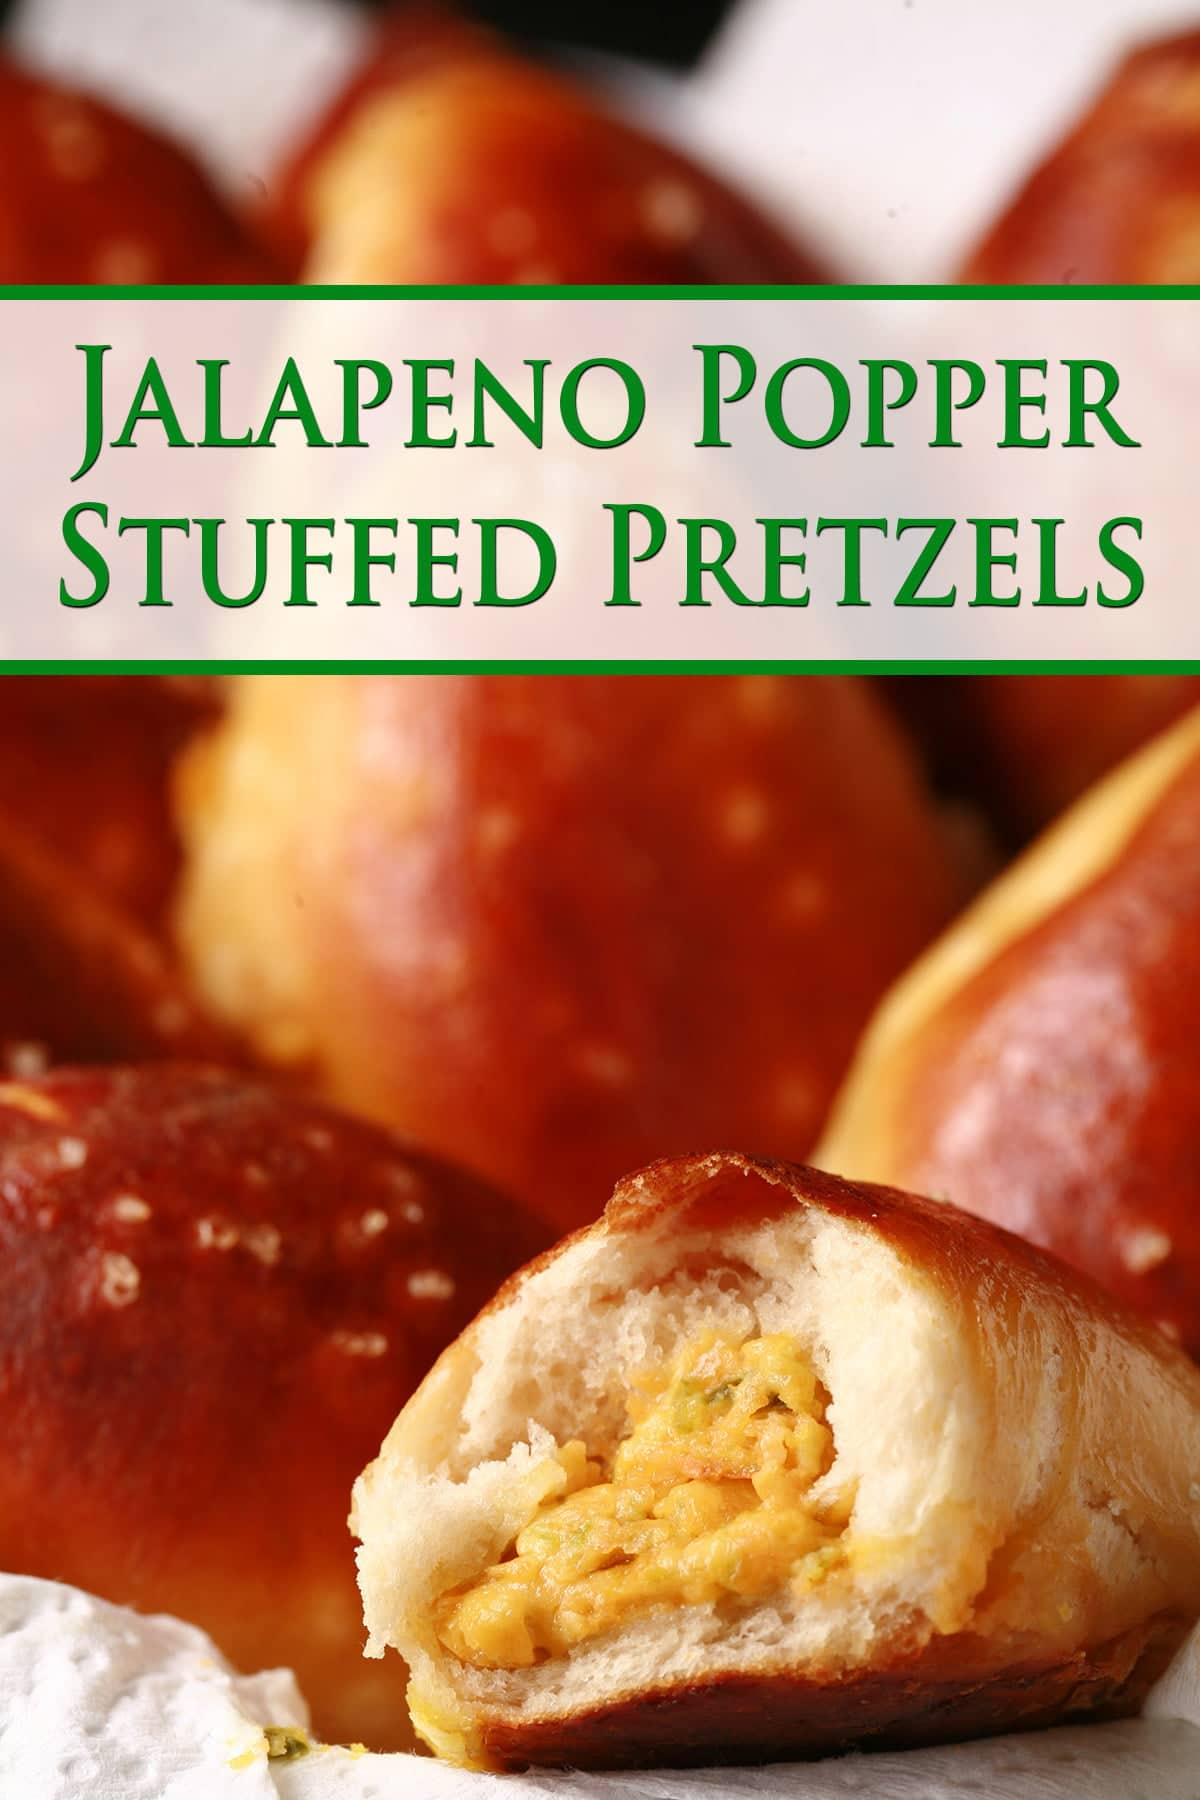 A napkin lined plastic food basket is full of golden brown jalapeno popper stuffed pretzels. In the foreground, one of the buns has a bite taken out, revealing a jalapeno and cheese filling.